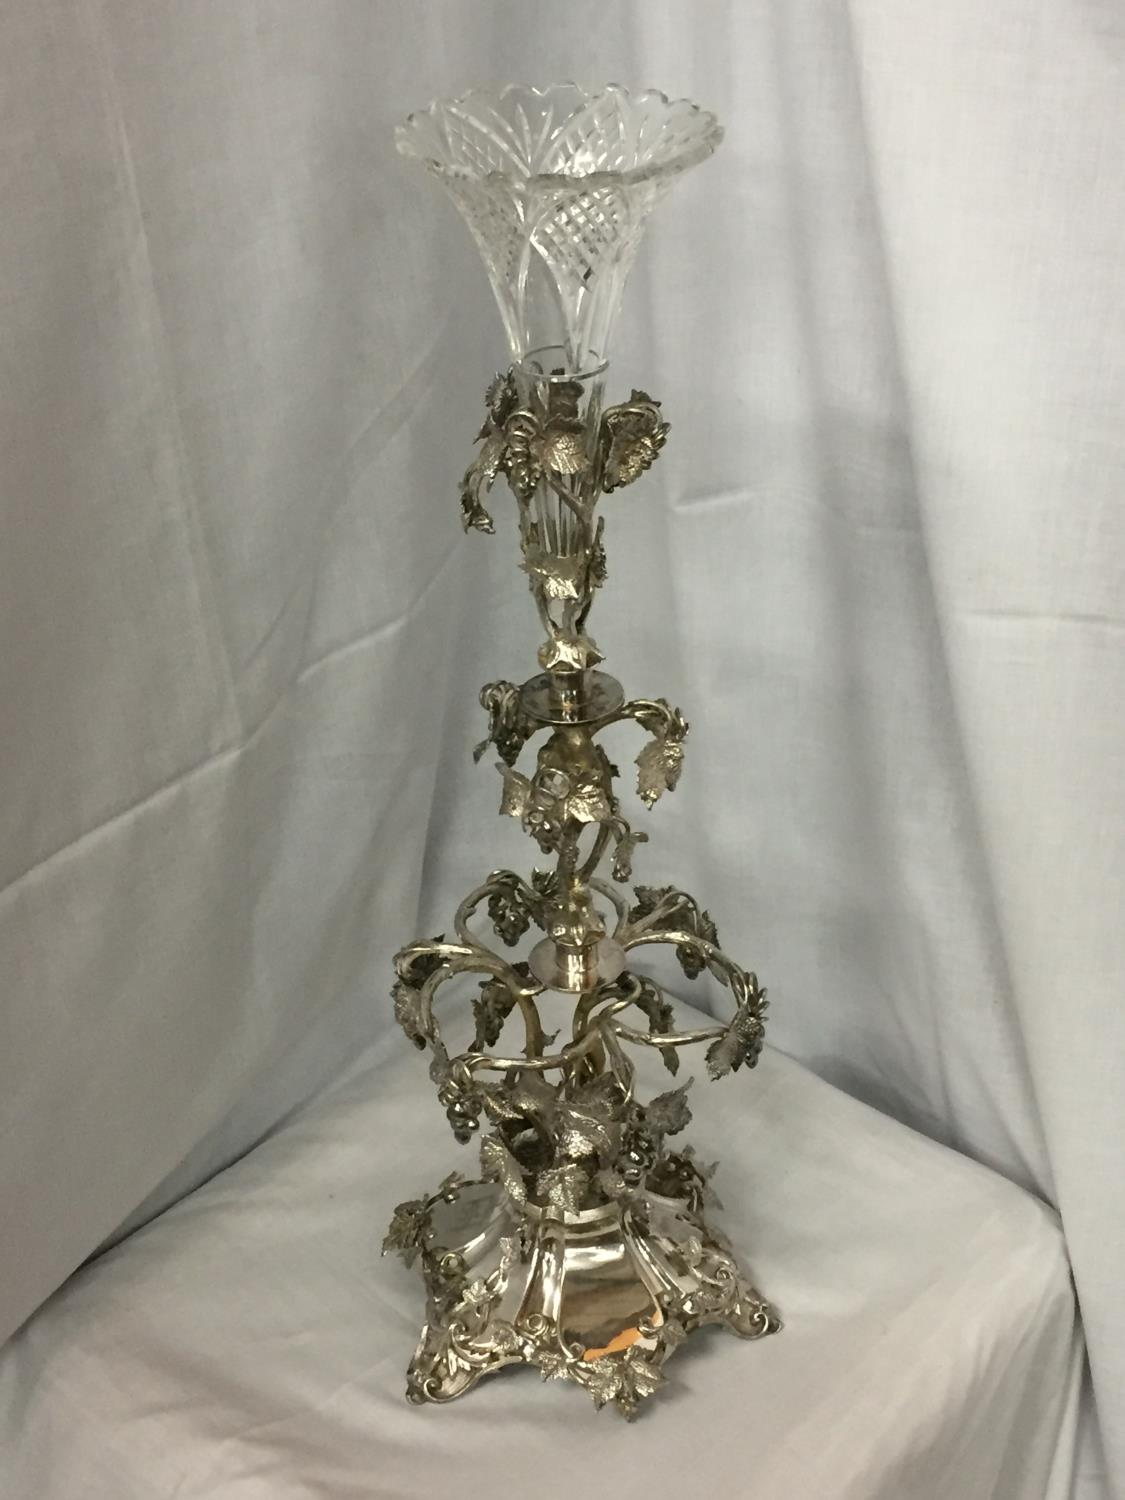 AN ORNATE SILVER PLATED EPERGENE WITH GLASS FLUTE HEIGHT 65CM